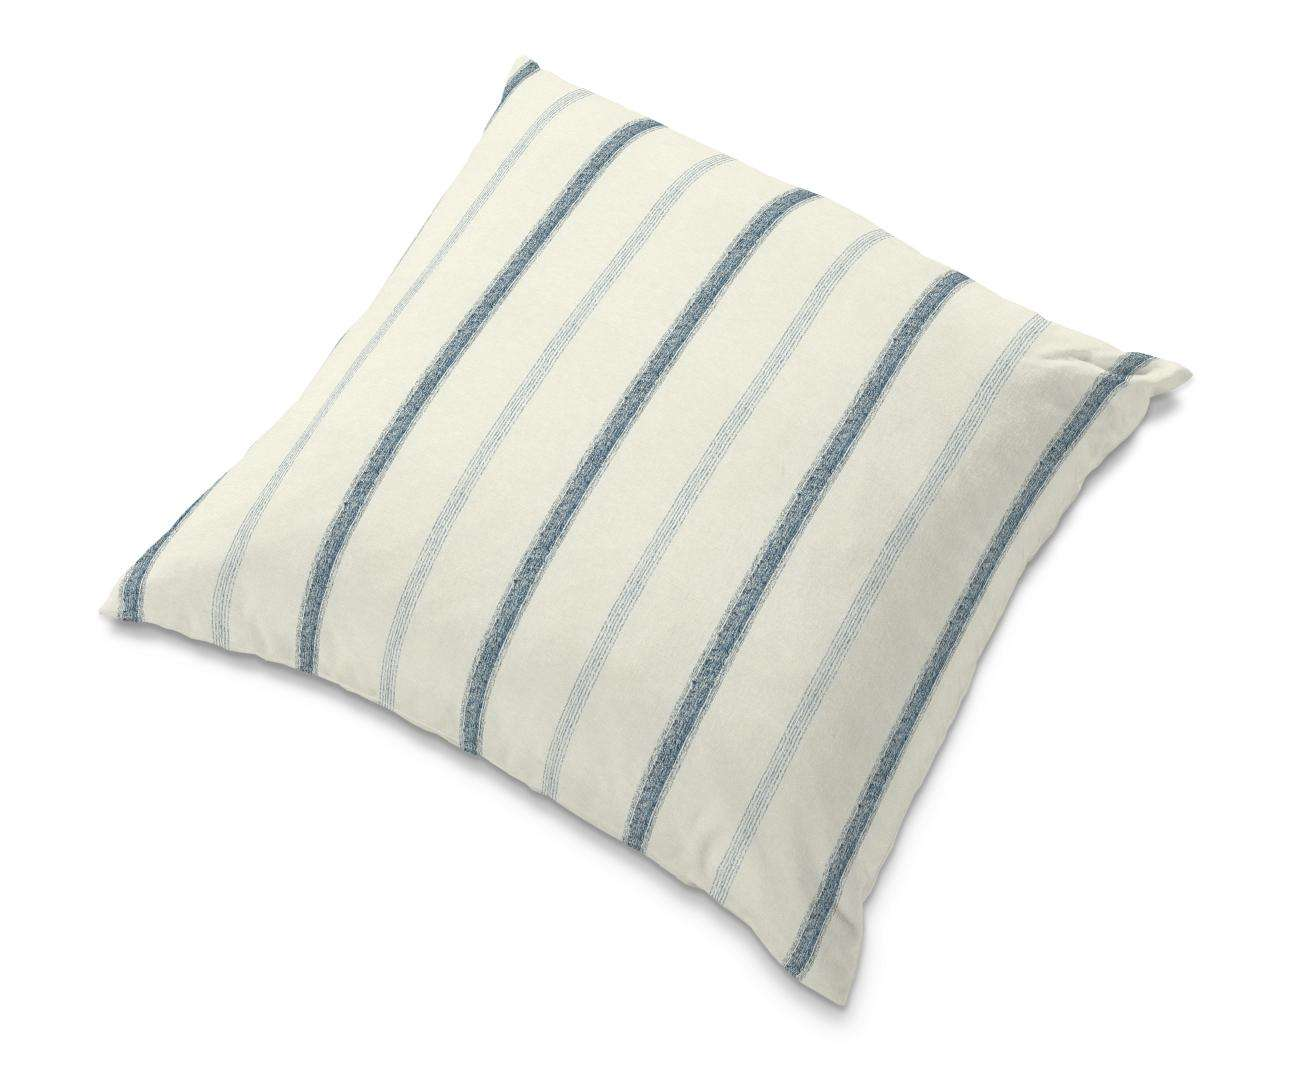 Tomelilla cushion cover 55 x 55 cm (22 x 22 inch) in collection Avinon, fabric: 129-66